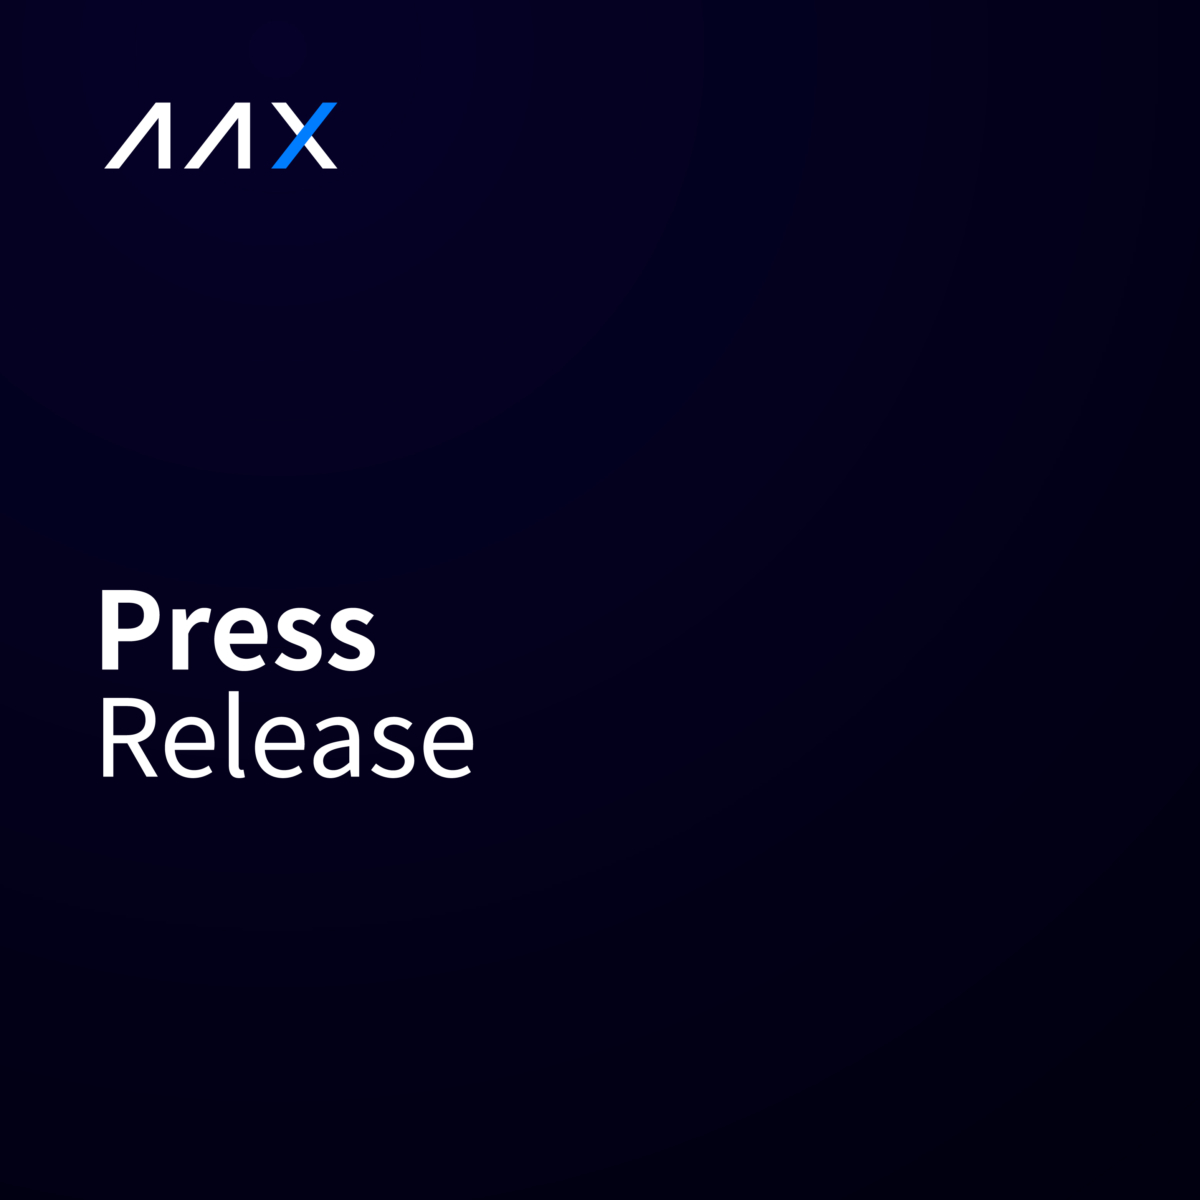 AAX, the Next Generation Cryptocurrency Exchange, Raises the Bar for Trust, Integrity, Security and Performance